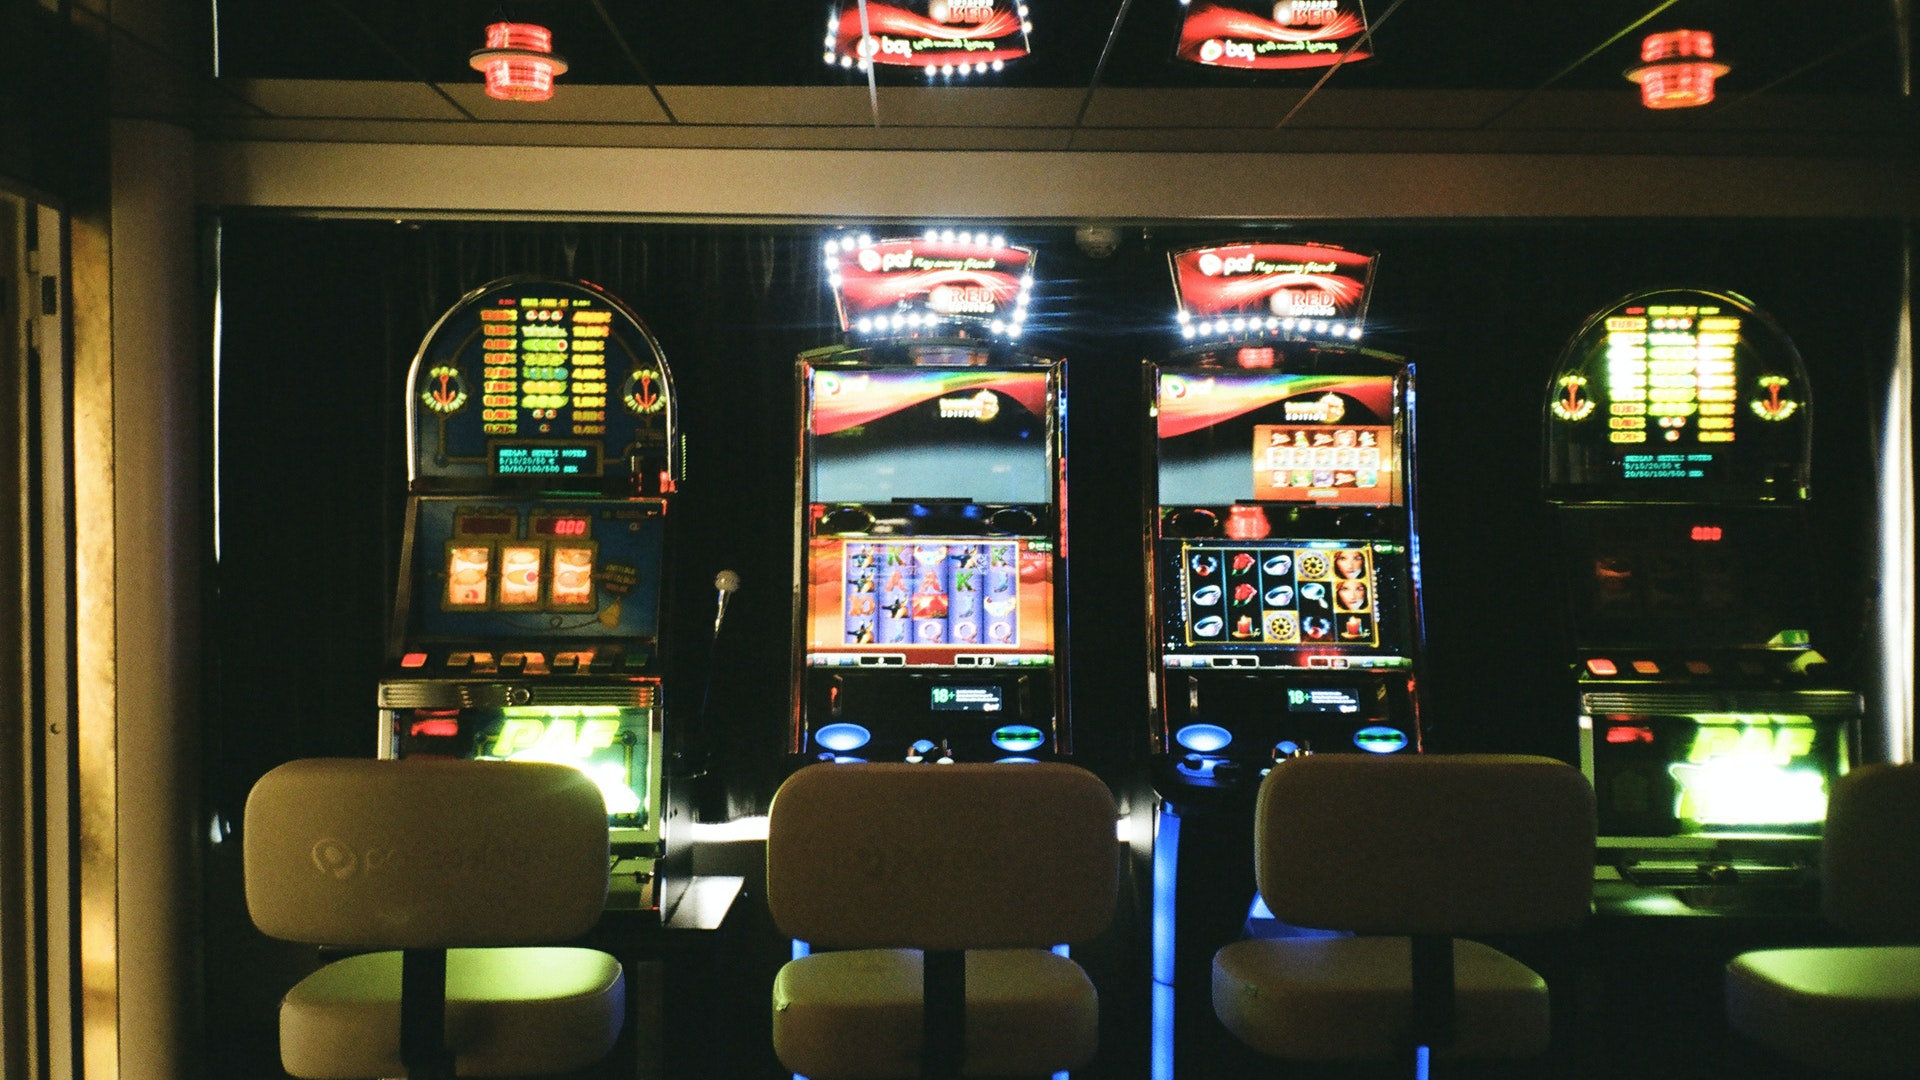 This image shows four adjacent slot machines to explain the gambling vertical. The seats in front of the machines are all empty.